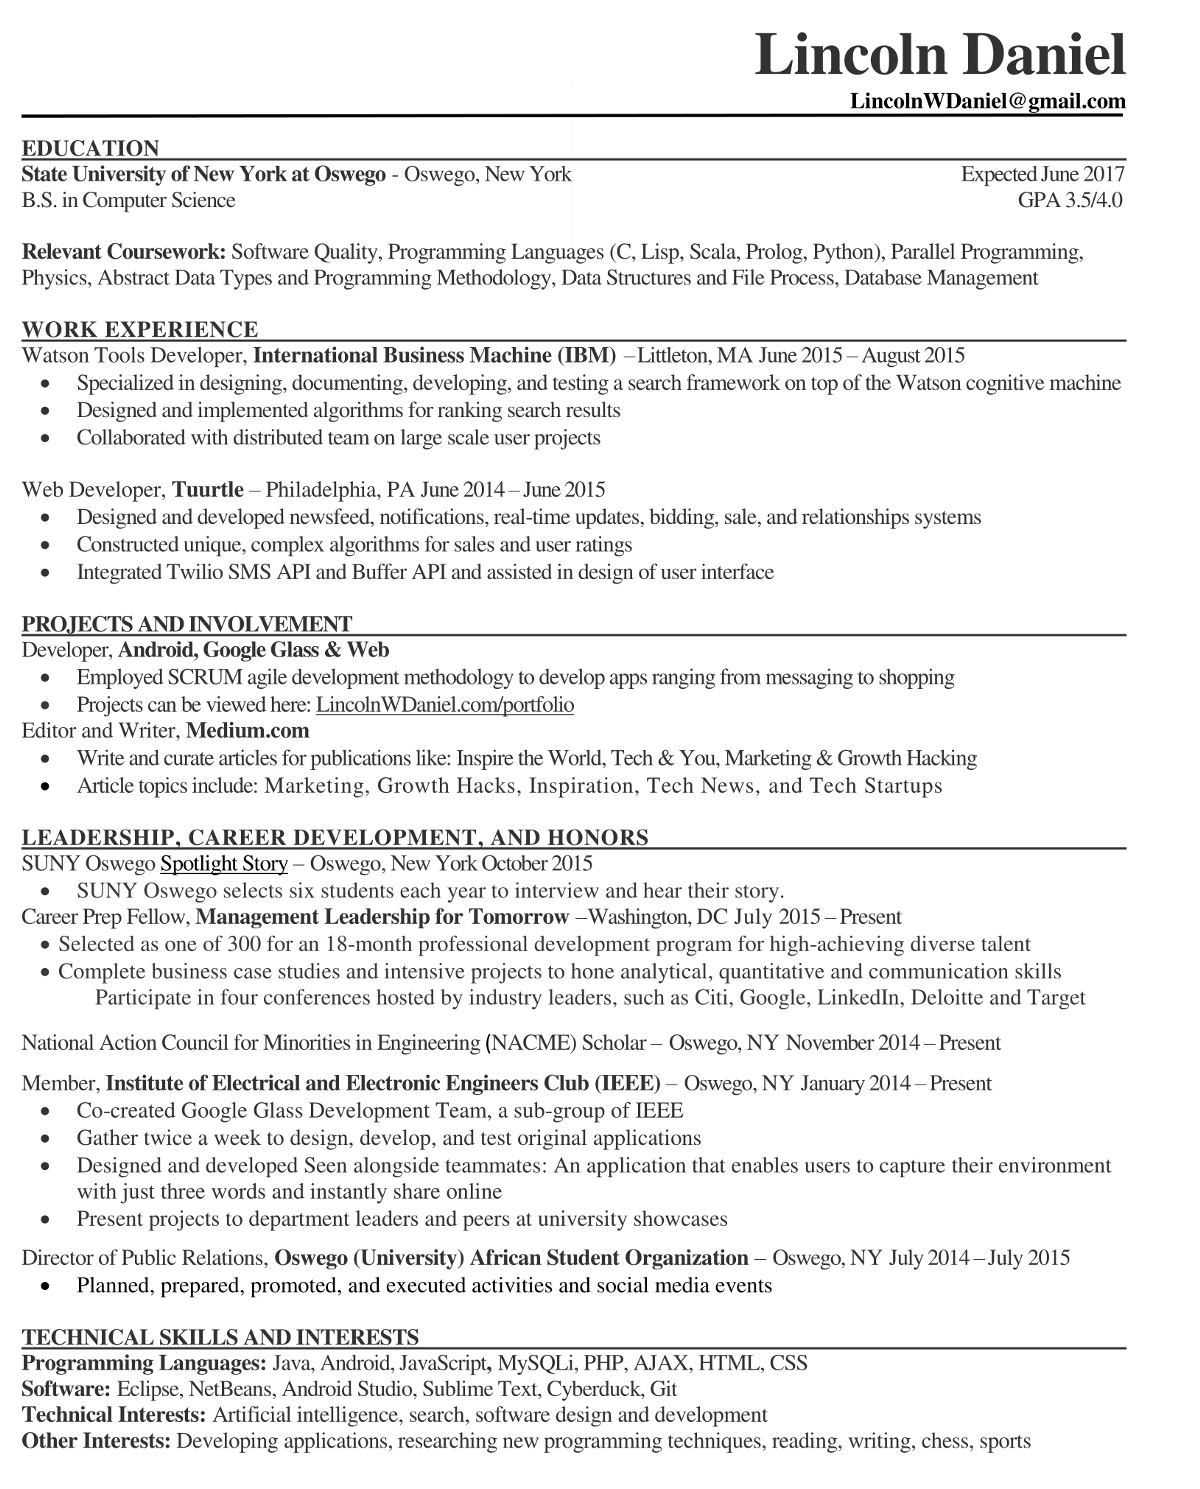 resume relevant coursework computer science Sample scienceand technical resumes provided you have sufficientcindy lou who 321 sesame street relevant courses: human-computerbsc computer sciencedegree with honours at middlesex univeristy in londonlisted below is the complete list of relevant course worki have completedadditional courseworkon resume computer sciencedec.